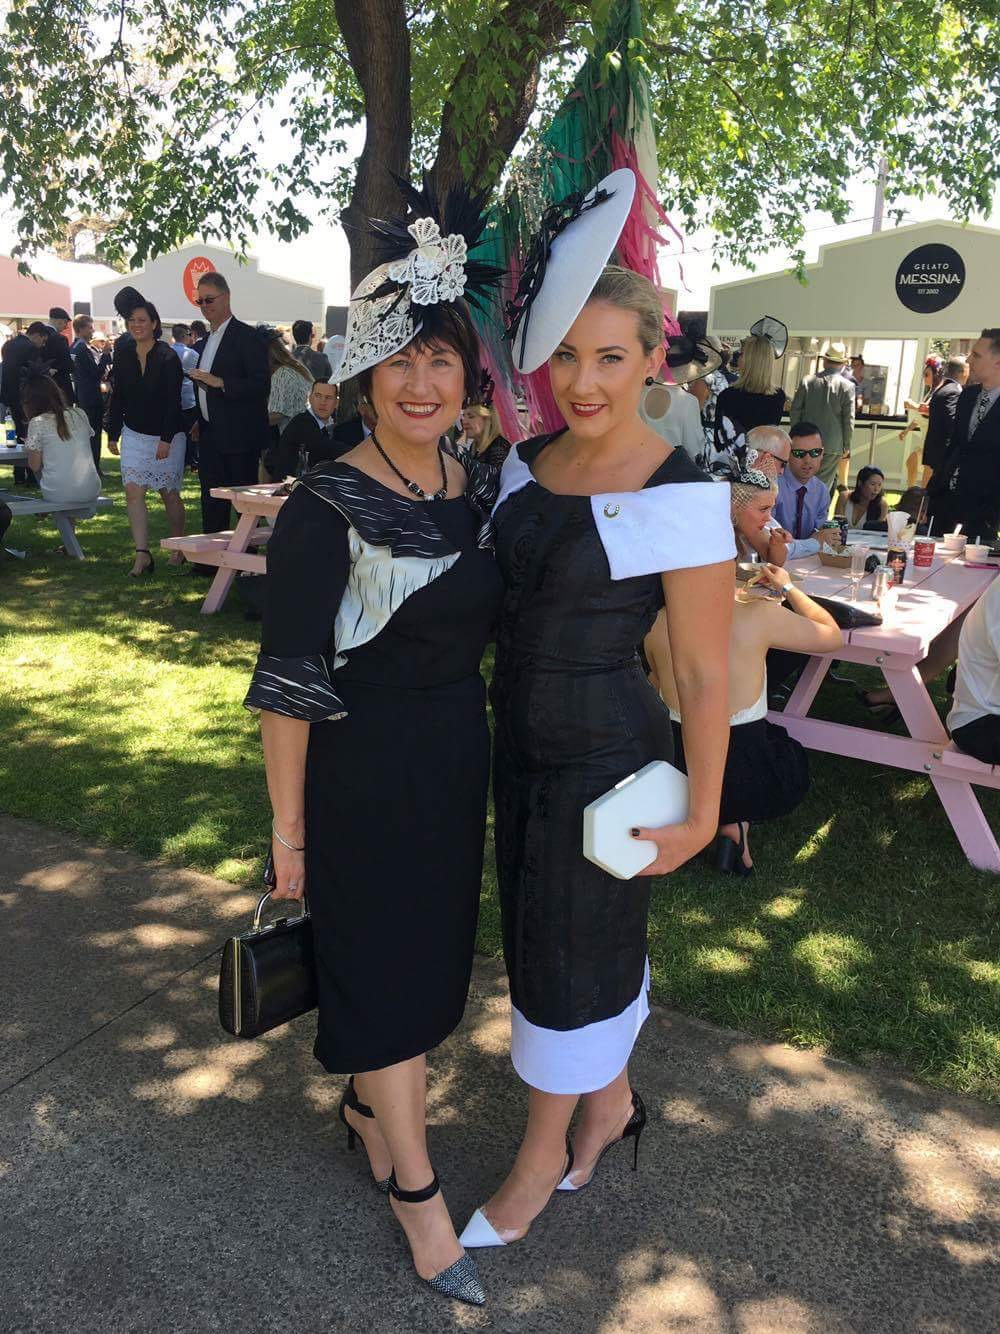 Mum and I enjoying the first day of fashion and race day fun  Both wearing custom Milva Carucci Design dresses & Sonlia Millinery (L) and Allport Millinery (R) (Photo by Liana Hastie)